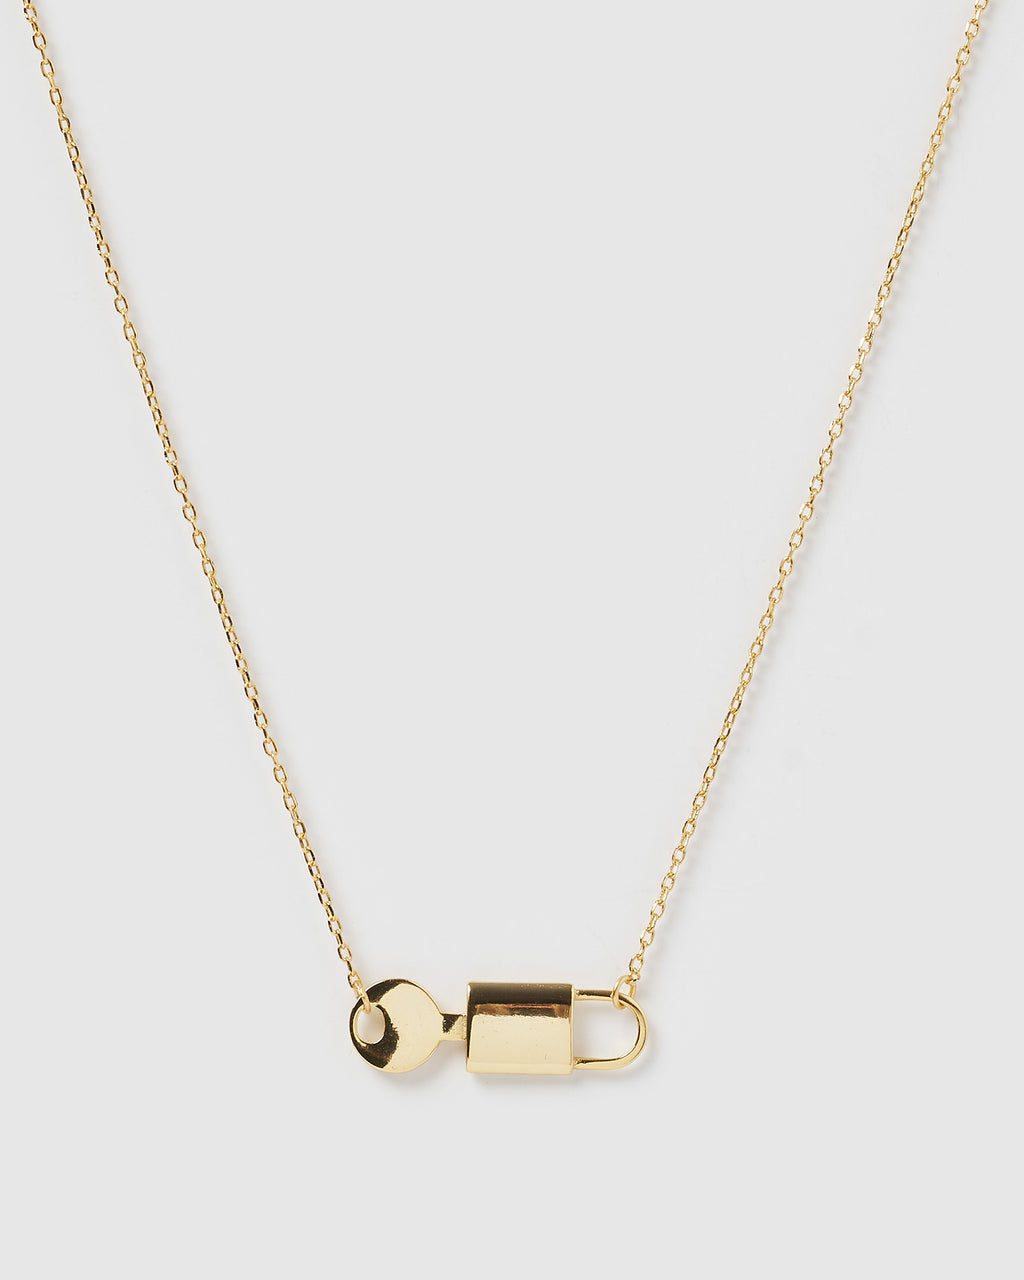 Izoa Lock and Key Necklace Gold